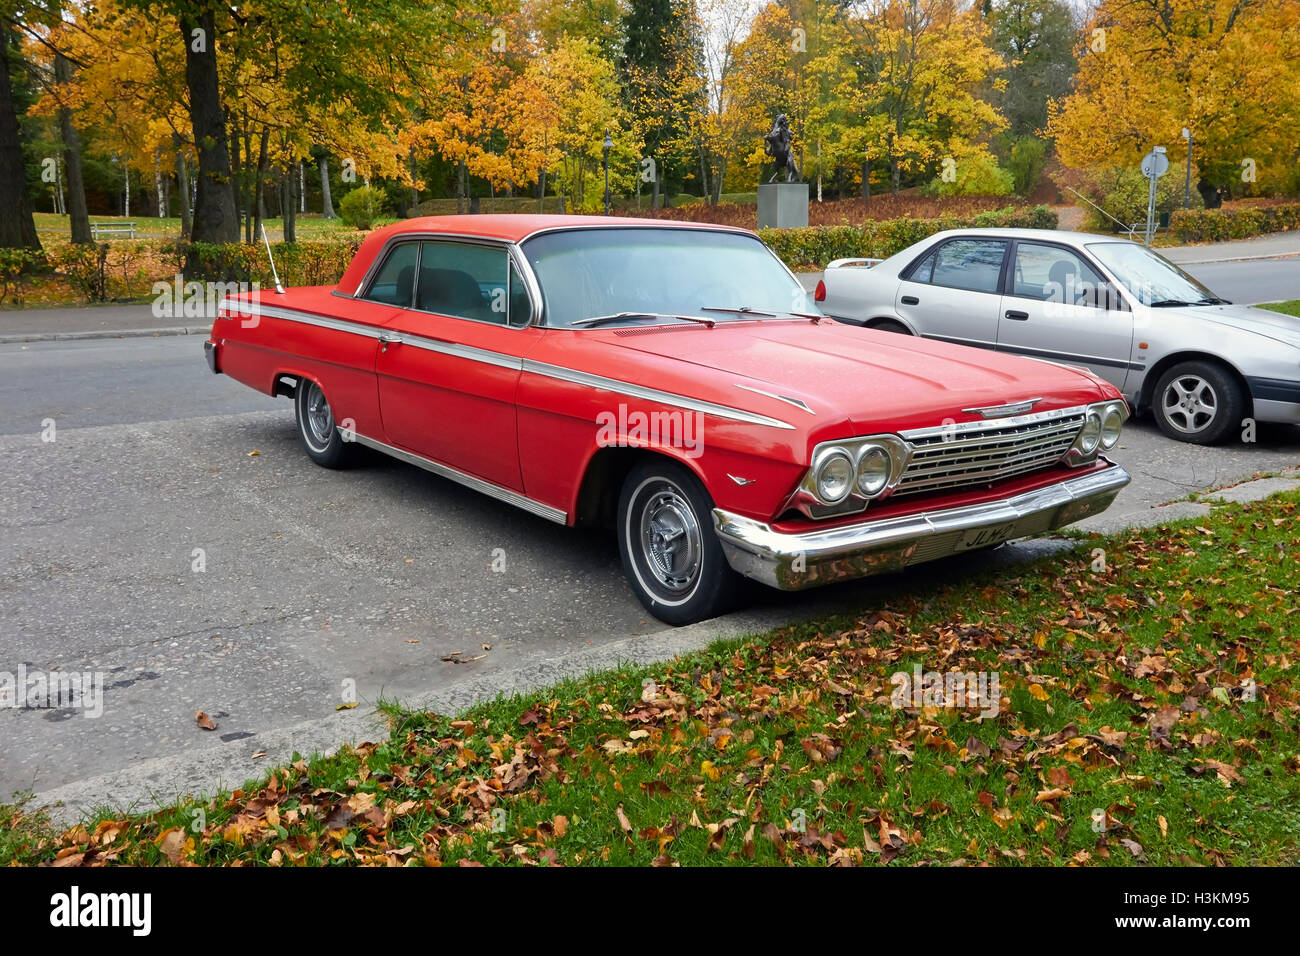 Impala Ss Stock Photos Images Alamy 1966 Chevy 2 Door 1962 Chevrolet Hardtop Image